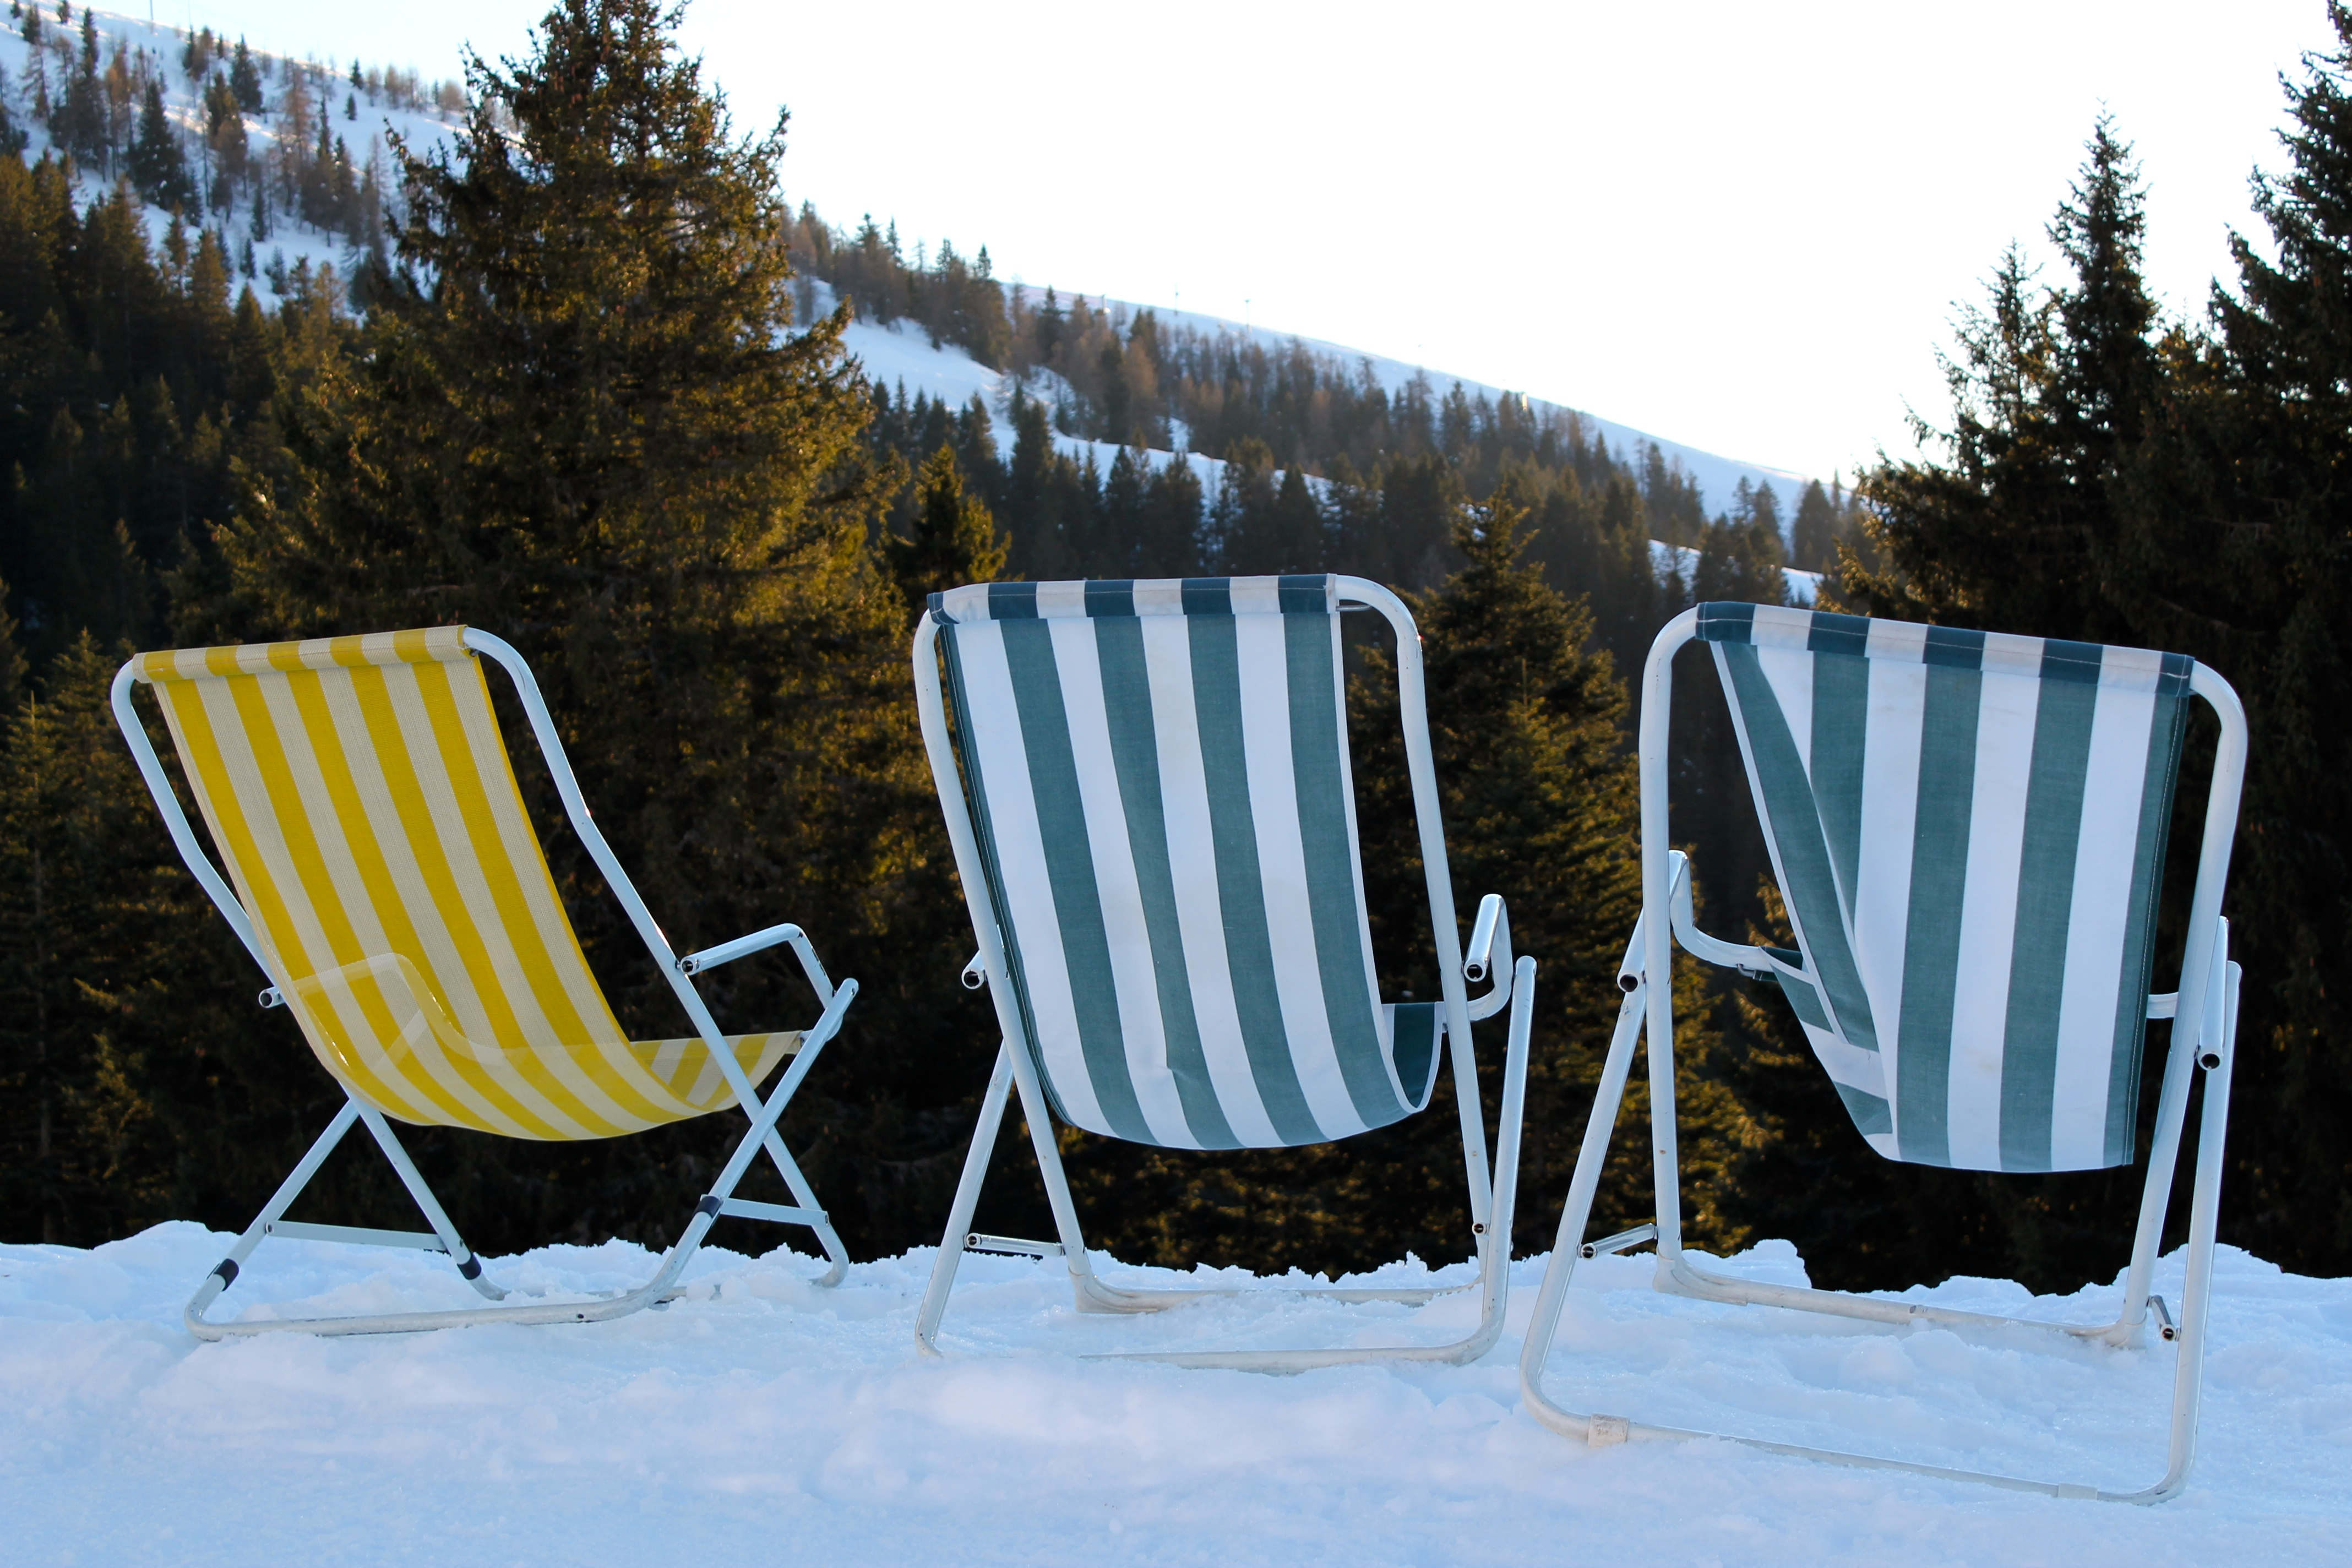 Or you can sunbathe while you ski! Photo by Gina Mussio